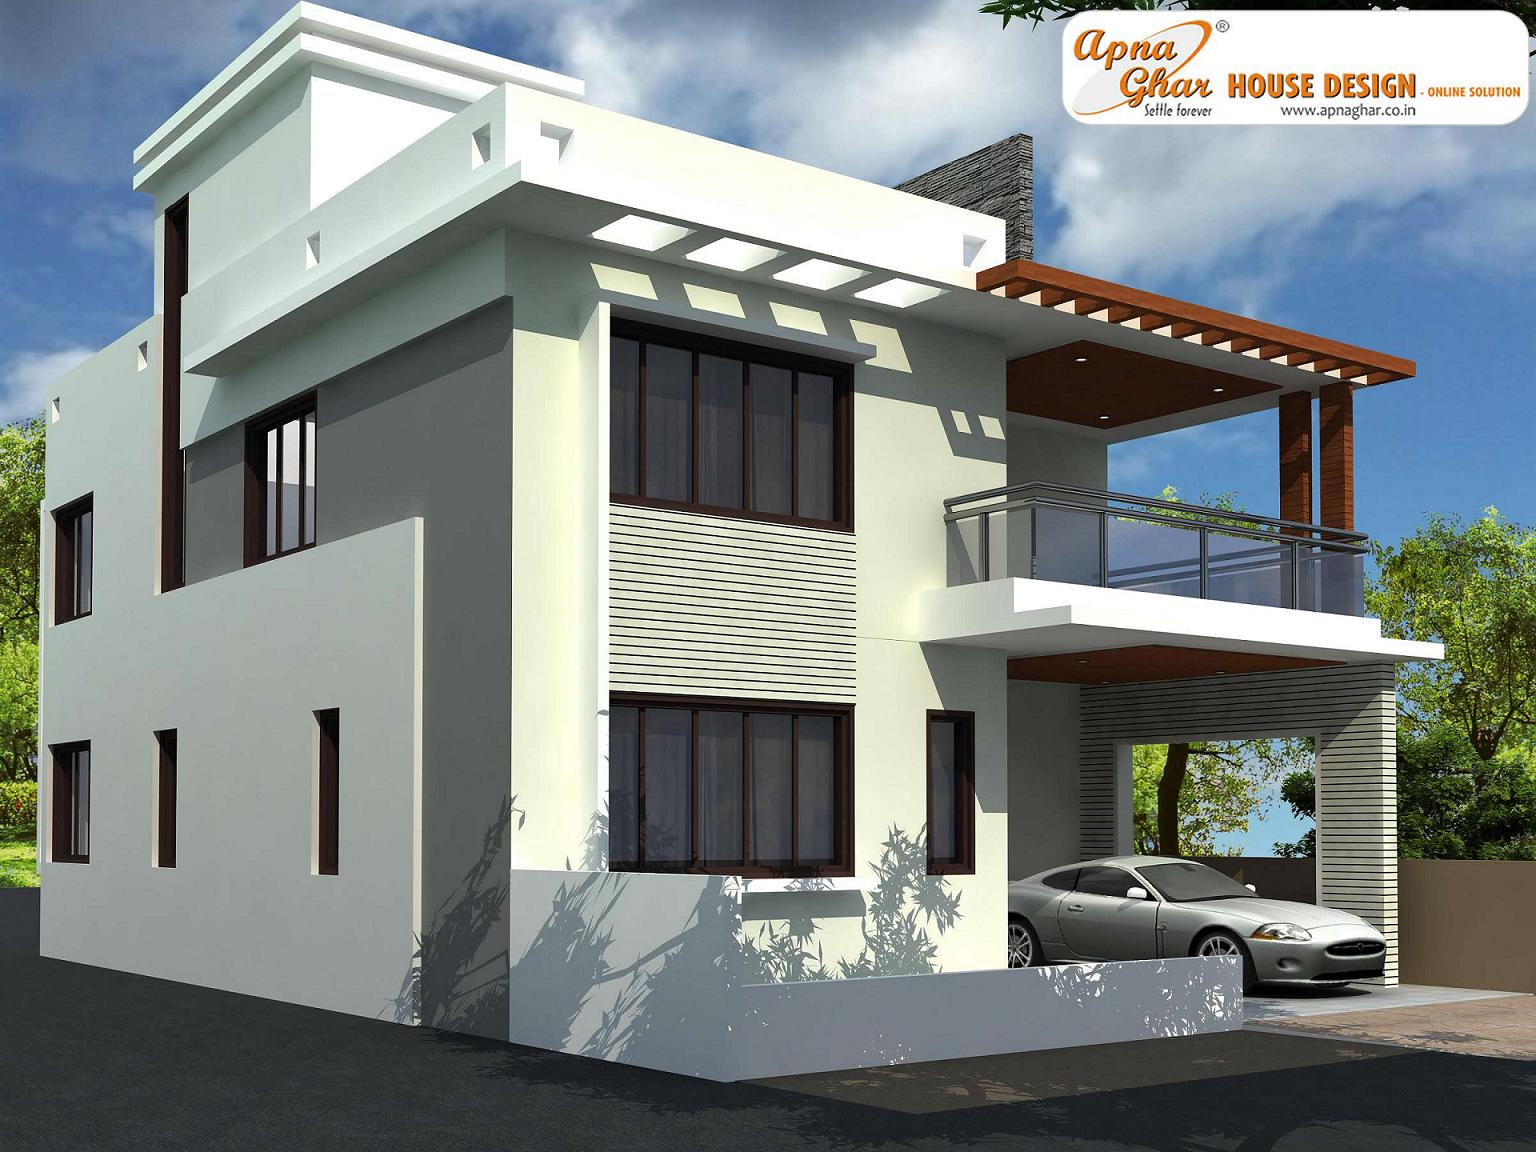 Architecture Design 30x40 House perfect architecture design 30x40 house plans ground floor